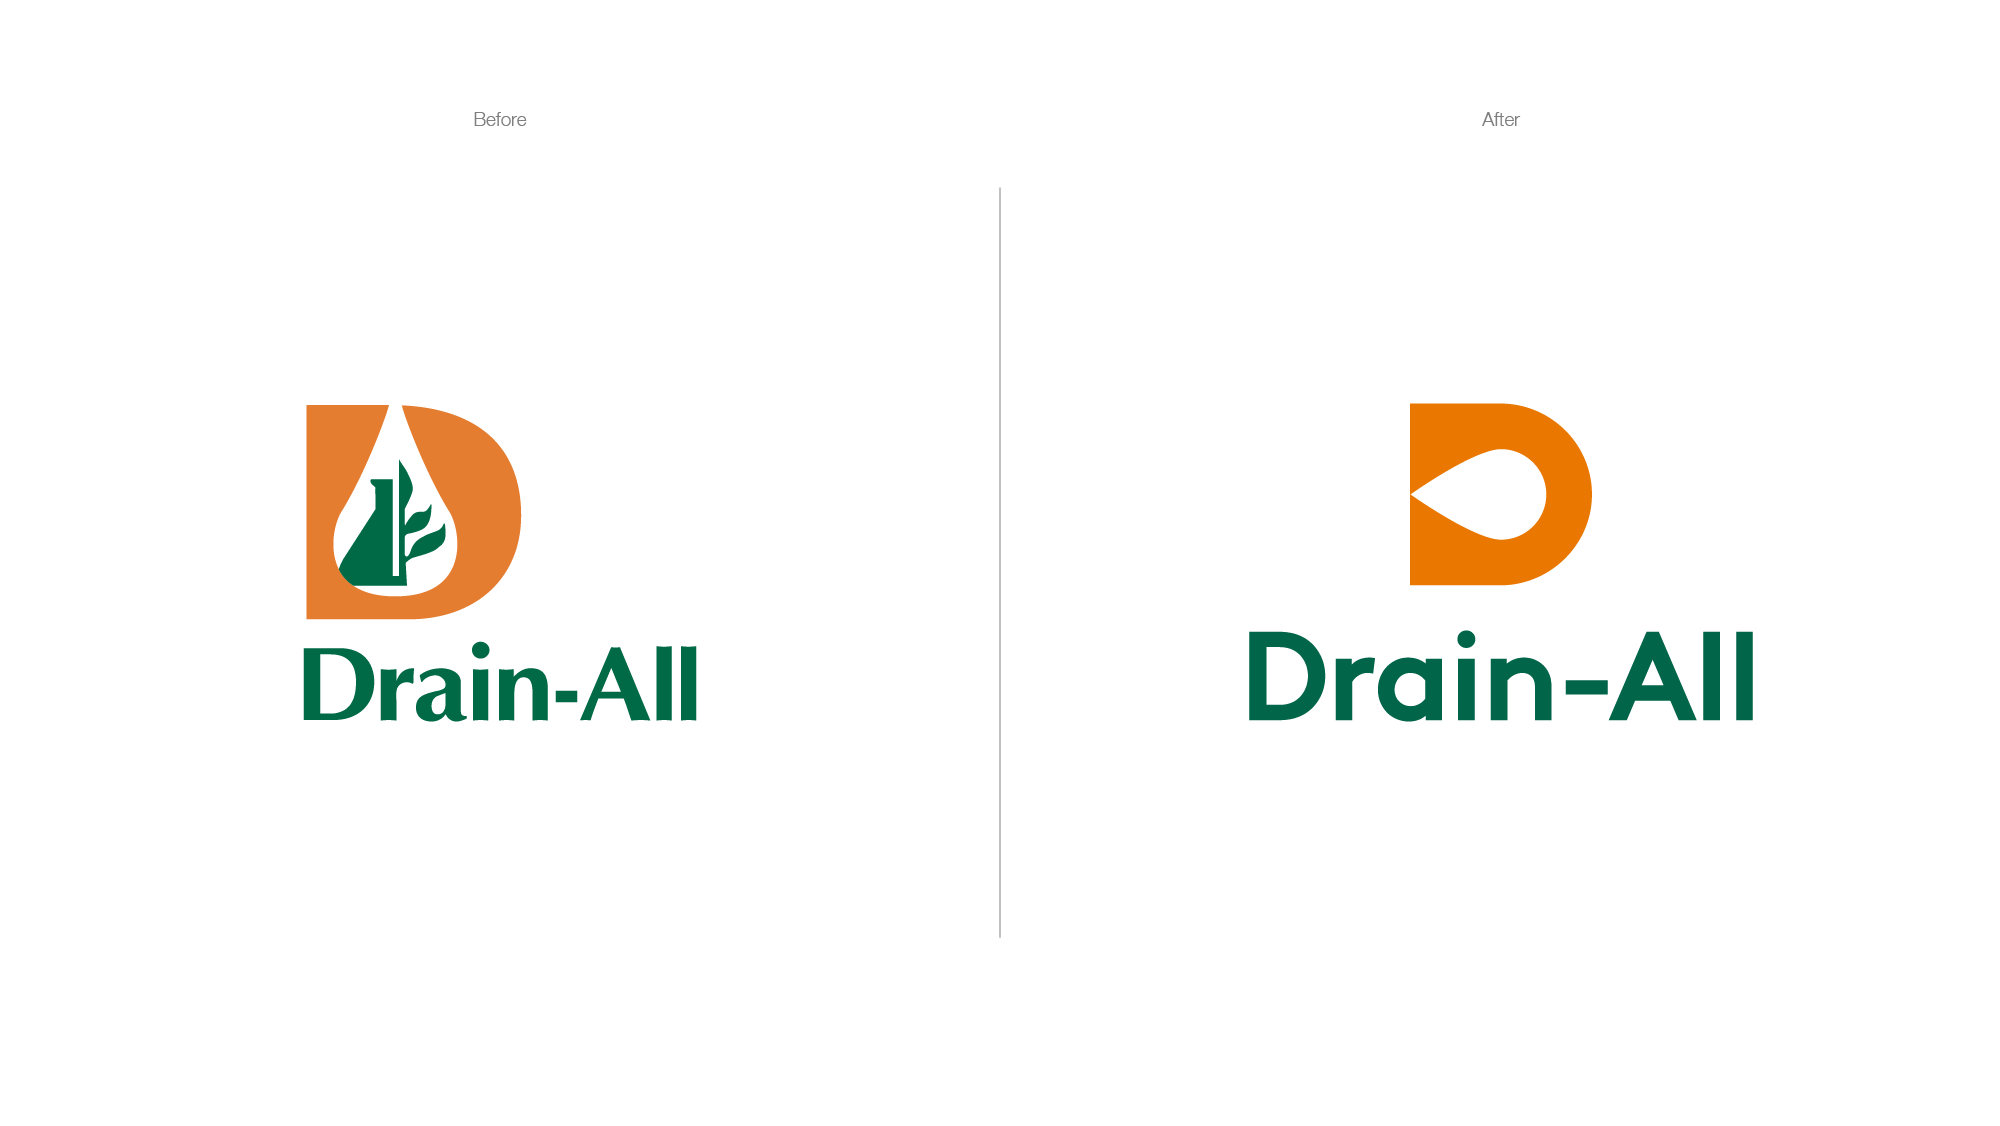 Drain-All - Before and After